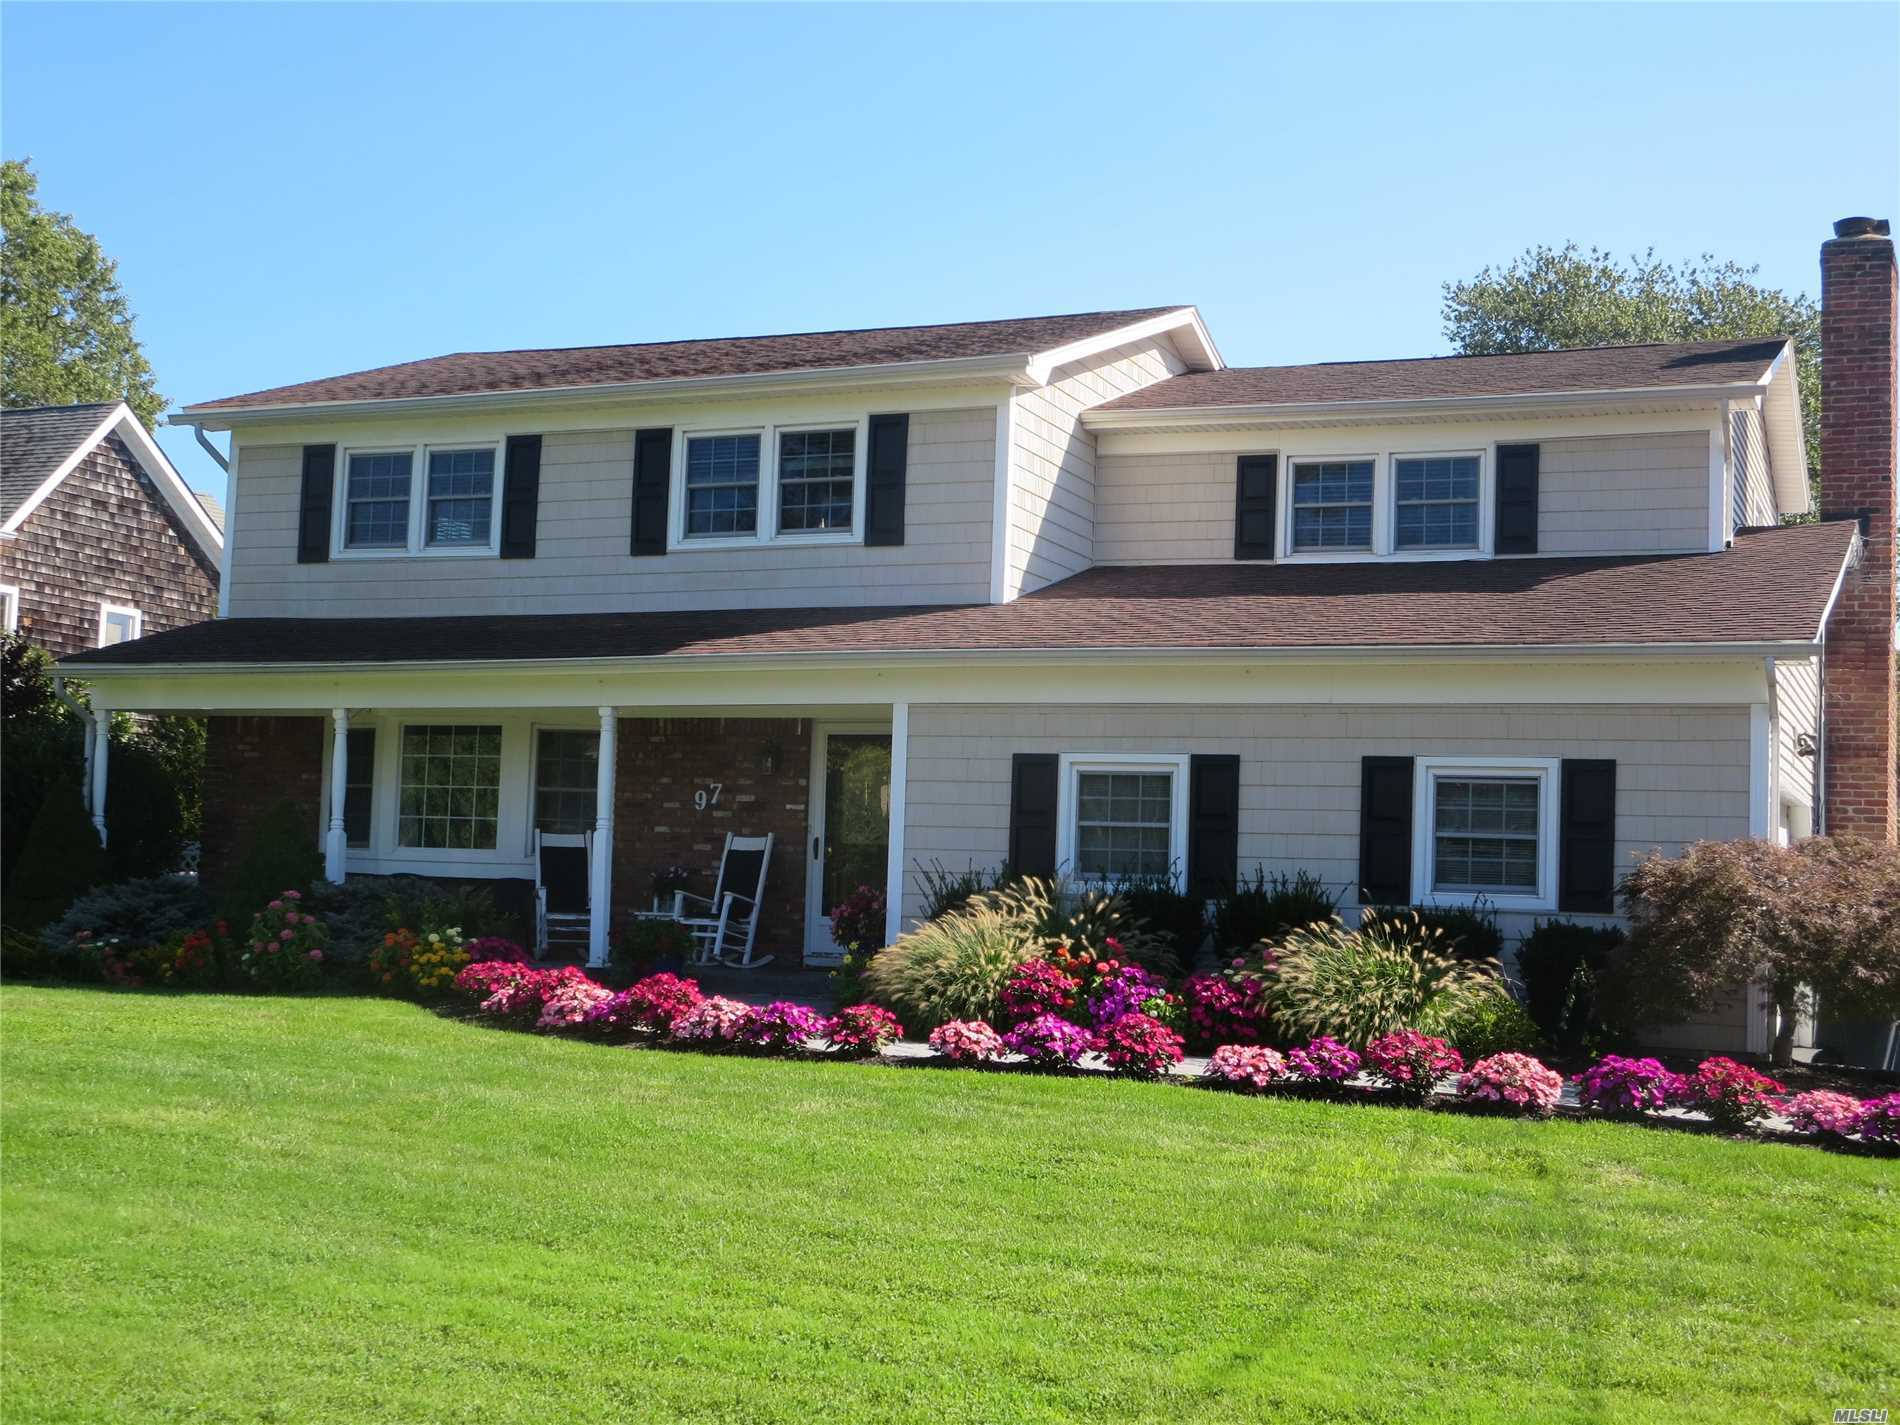 Photo of home for sale at 97 Sunset Dr, Sayville NY